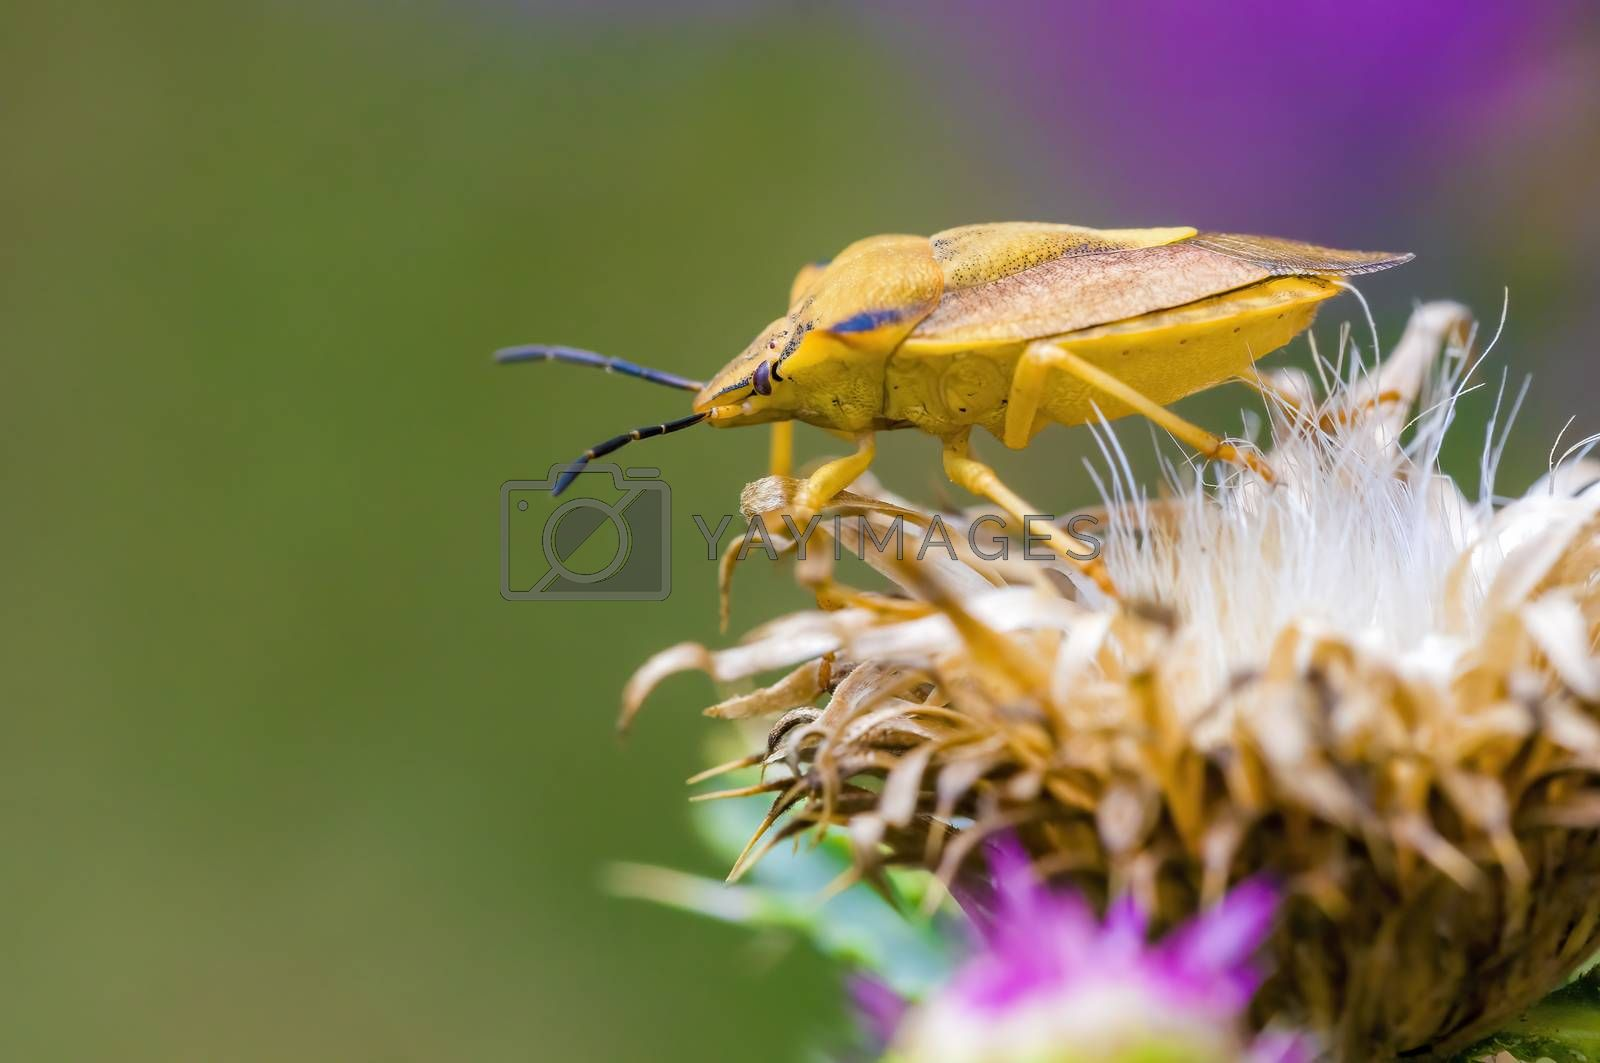 a Small beetle insect on a plant in the meadows